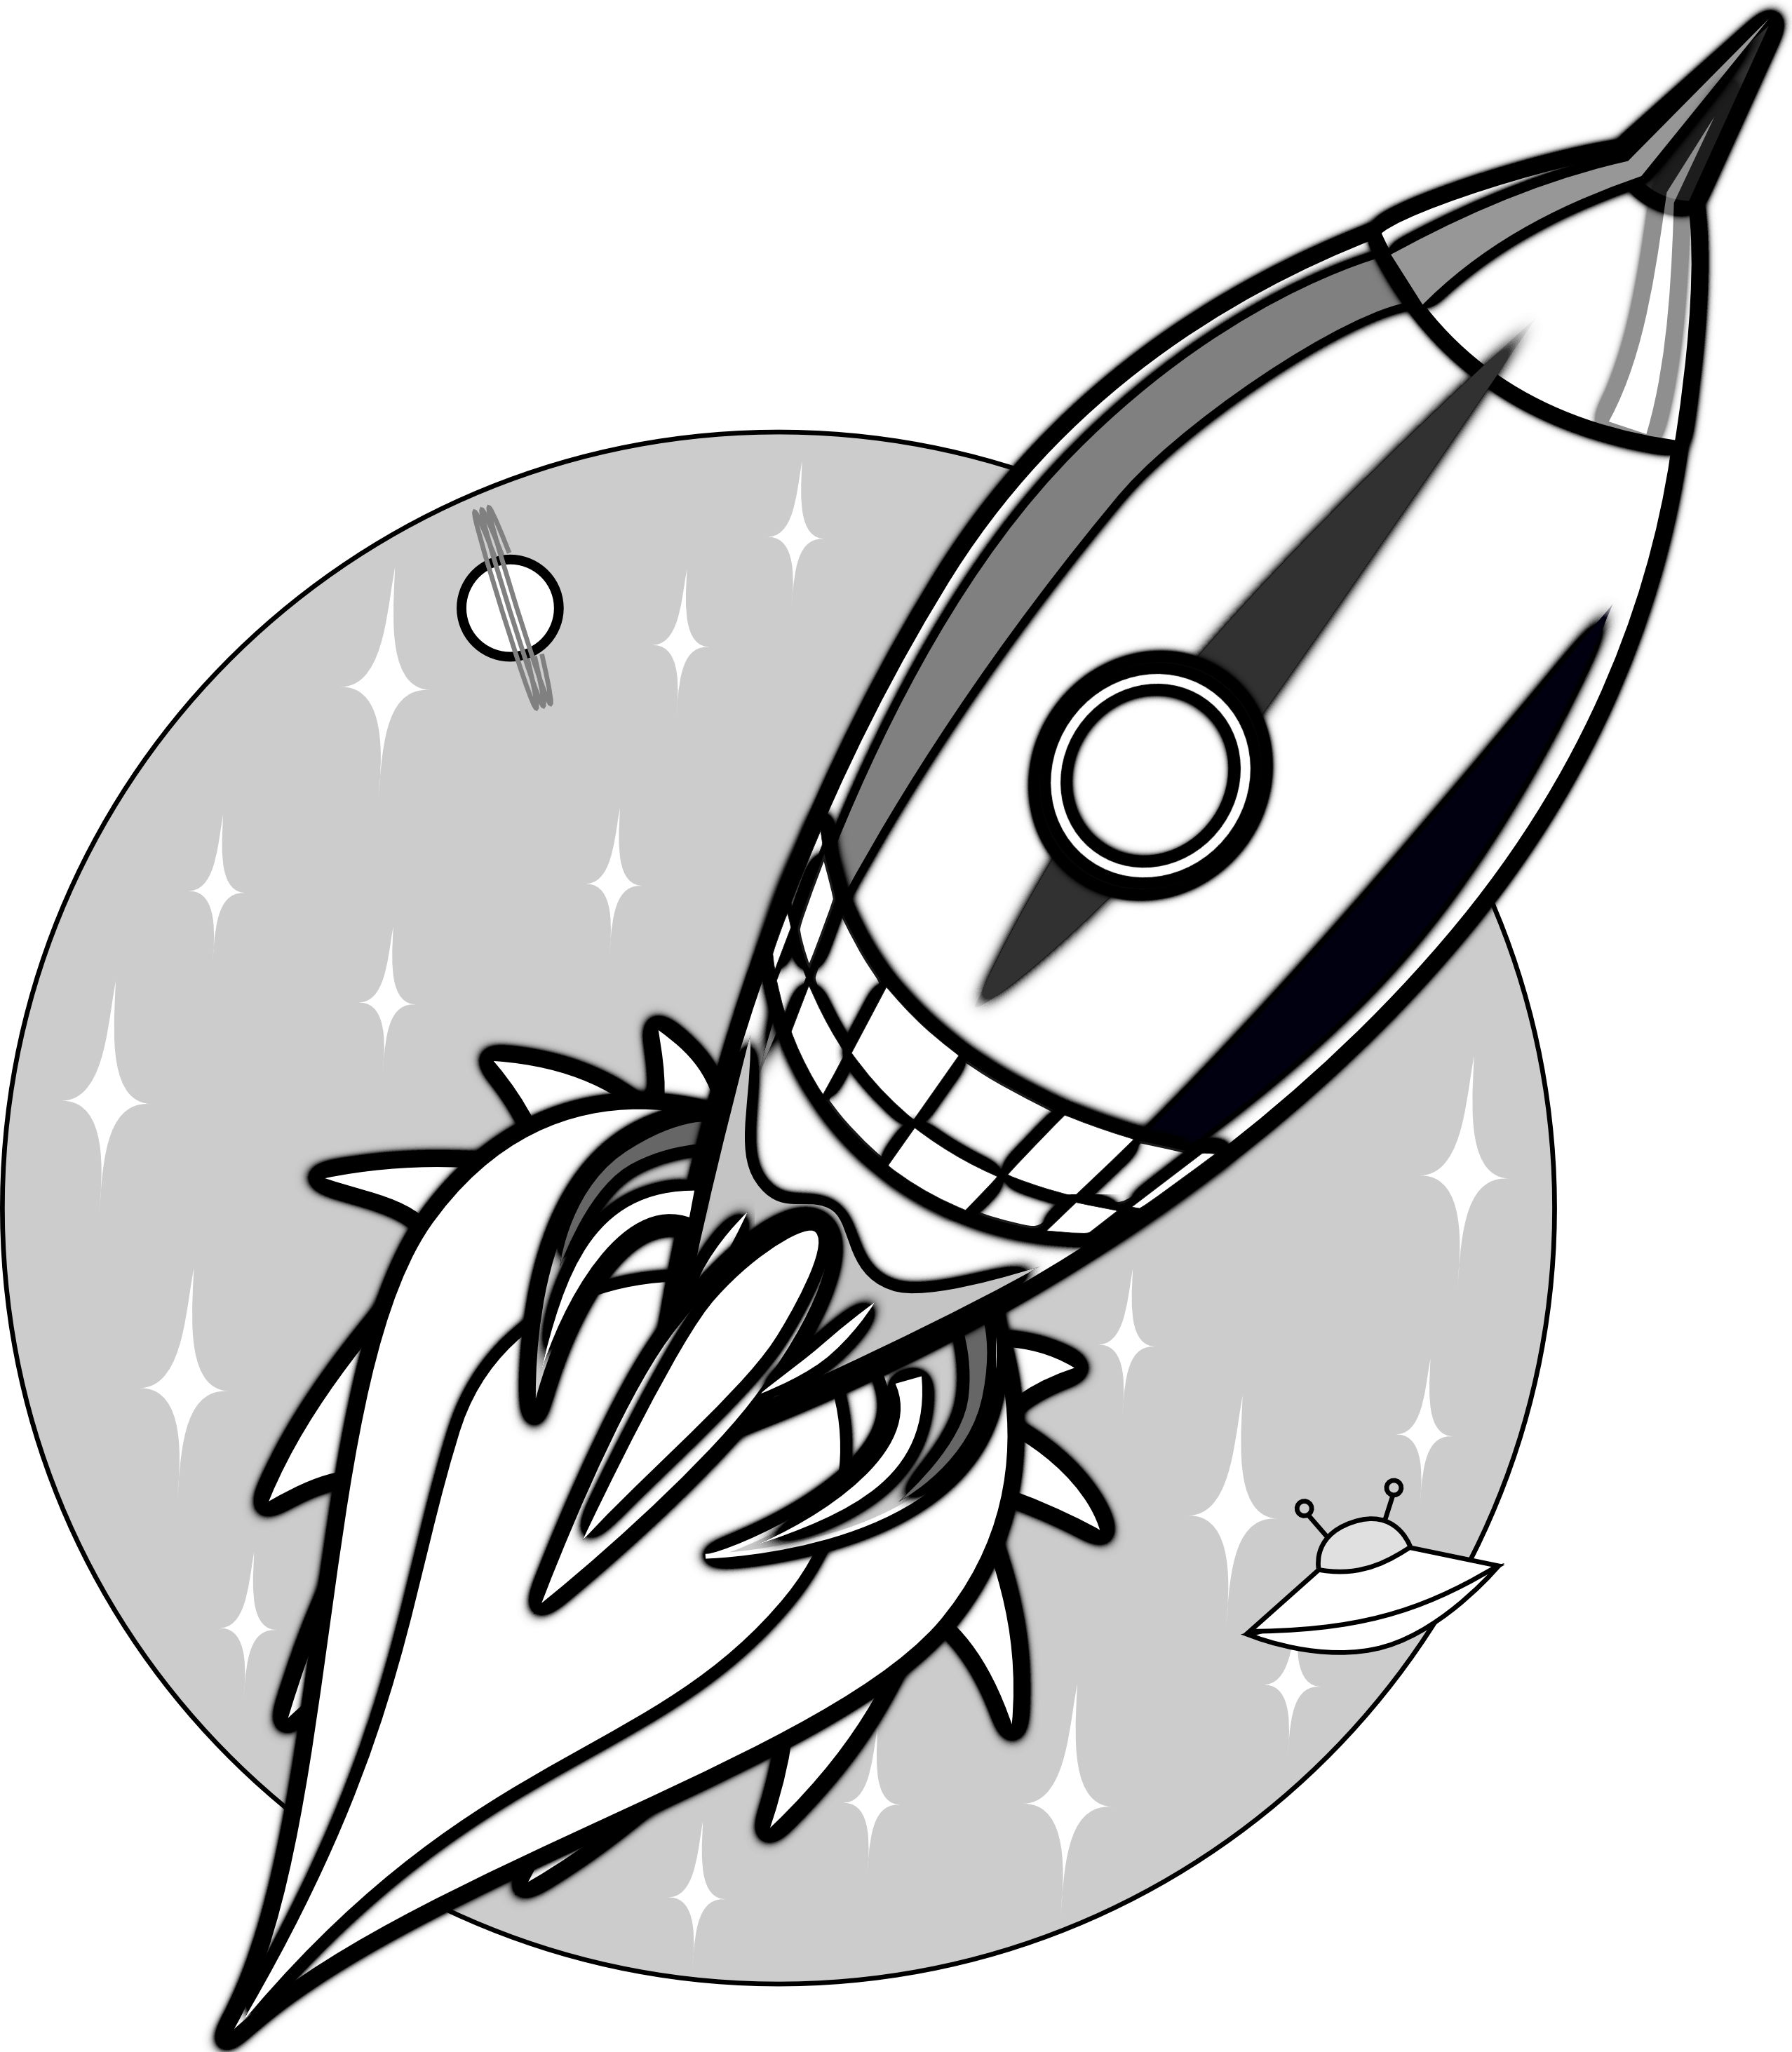 rocket drawings easy space rocket drawing rocket drawings